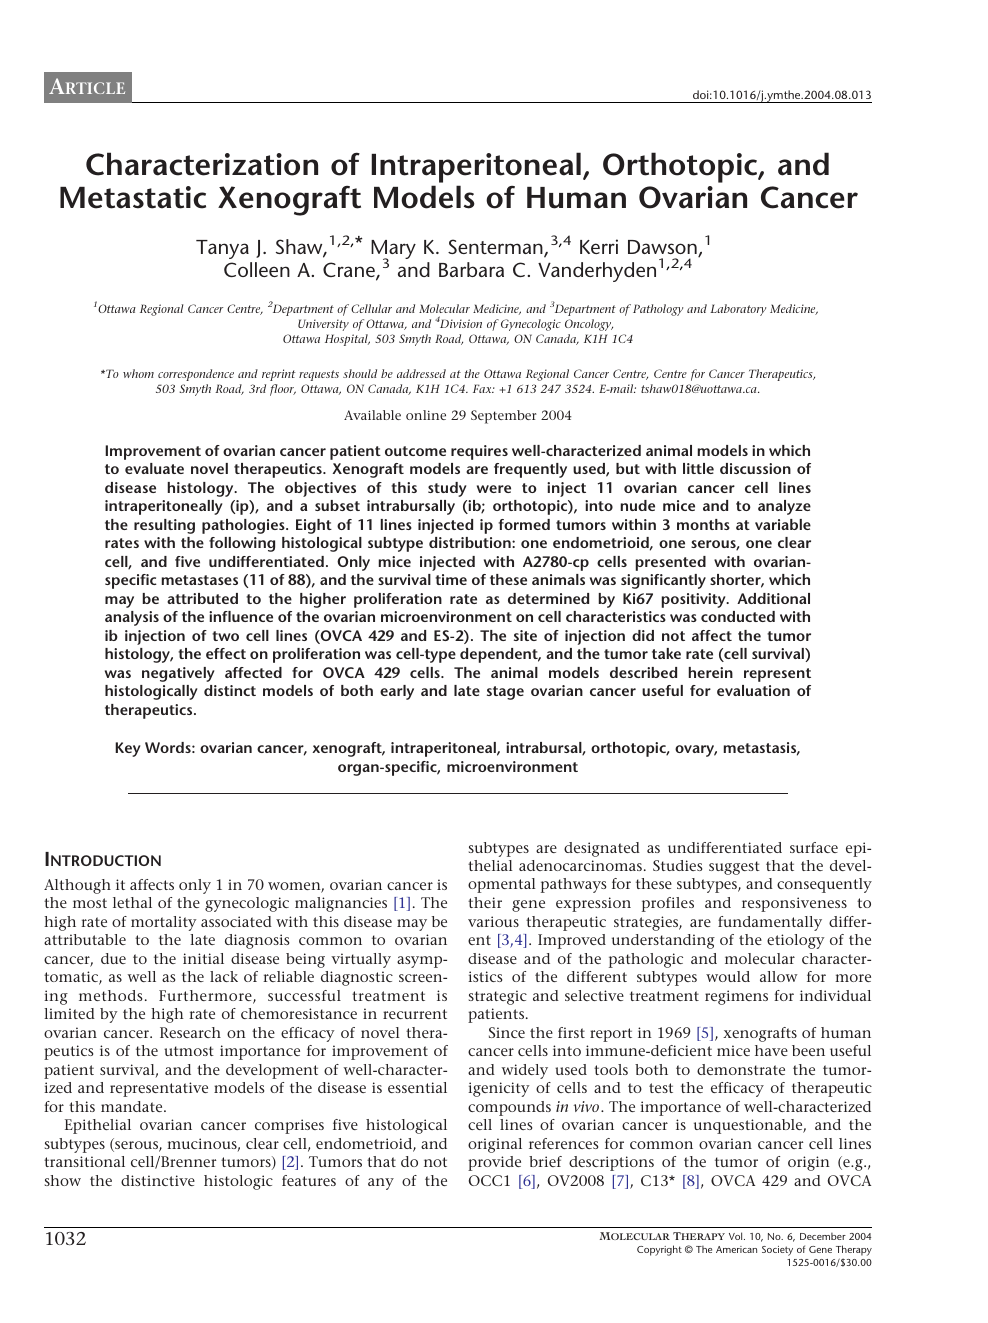 Characterization Of Intraperitoneal Orthotopic And Metastatic Xenograft Models Of Human Ovarian Cancer Topic Of Research Paper In Biological Sciences Download Scholarly Article Pdf And Read For Free On Cyberleninka Open Science